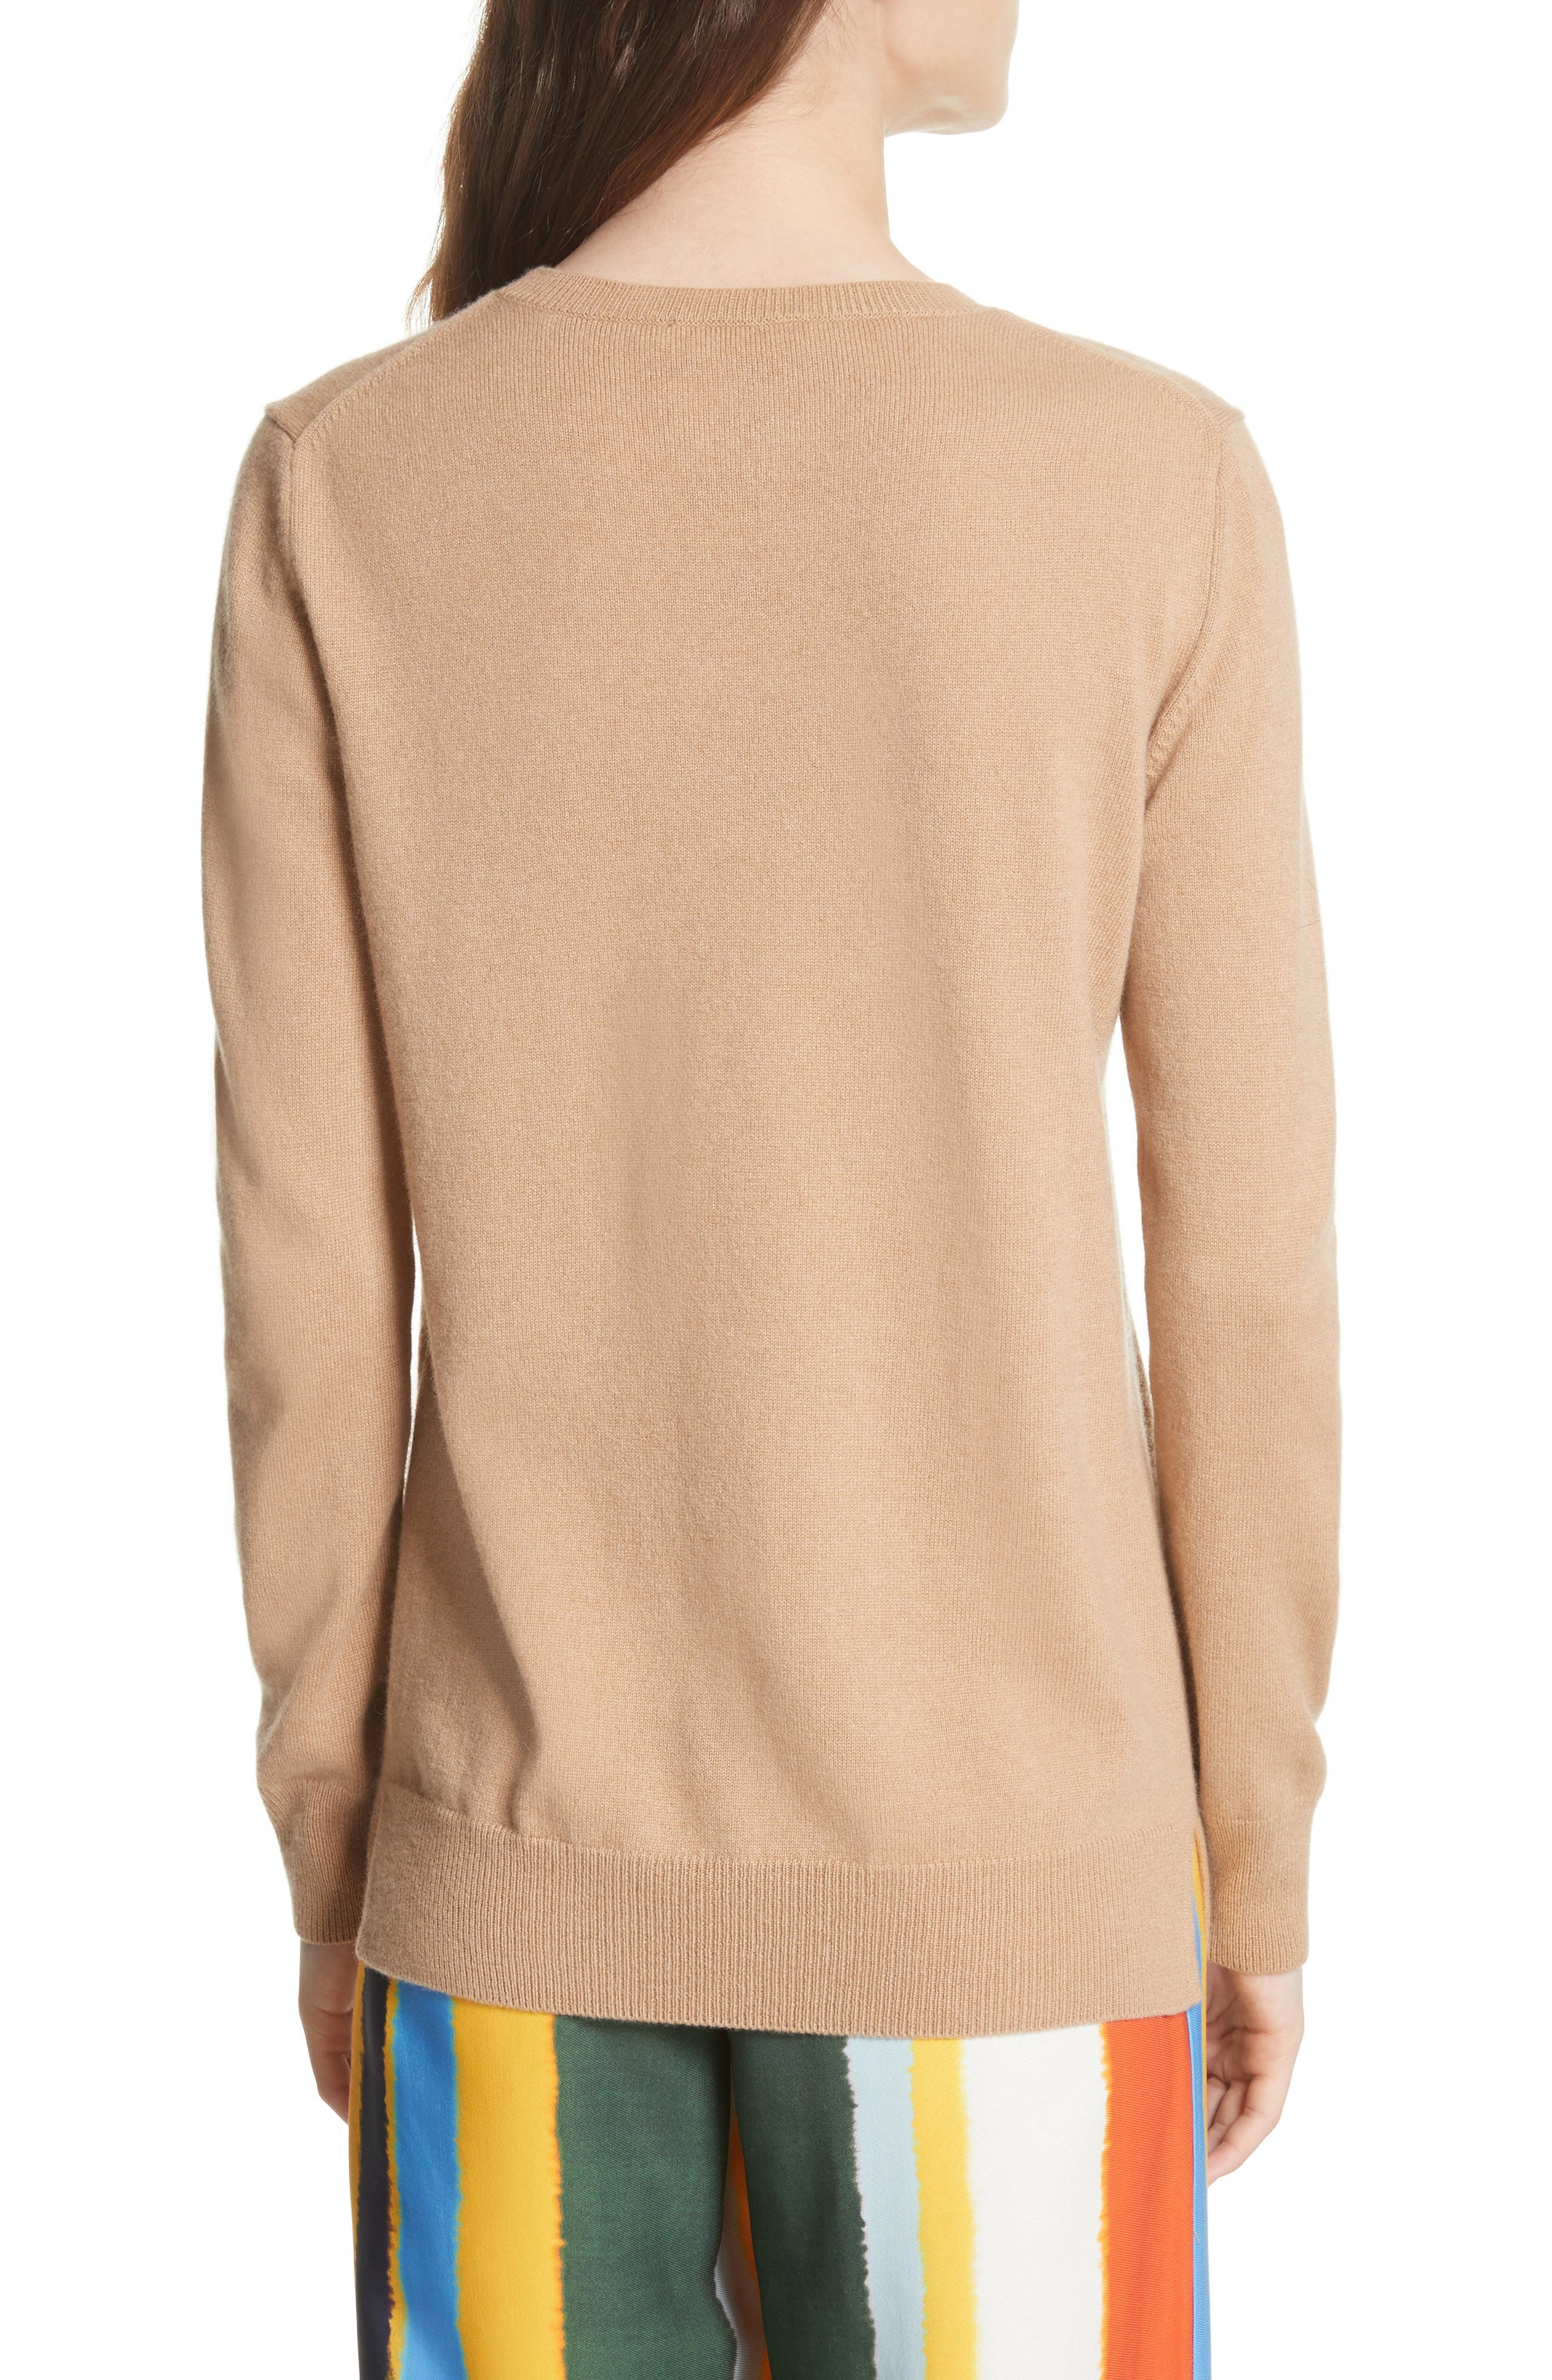 Bella Cashmere Sweater,                             Alternate thumbnail 2, color,                             235